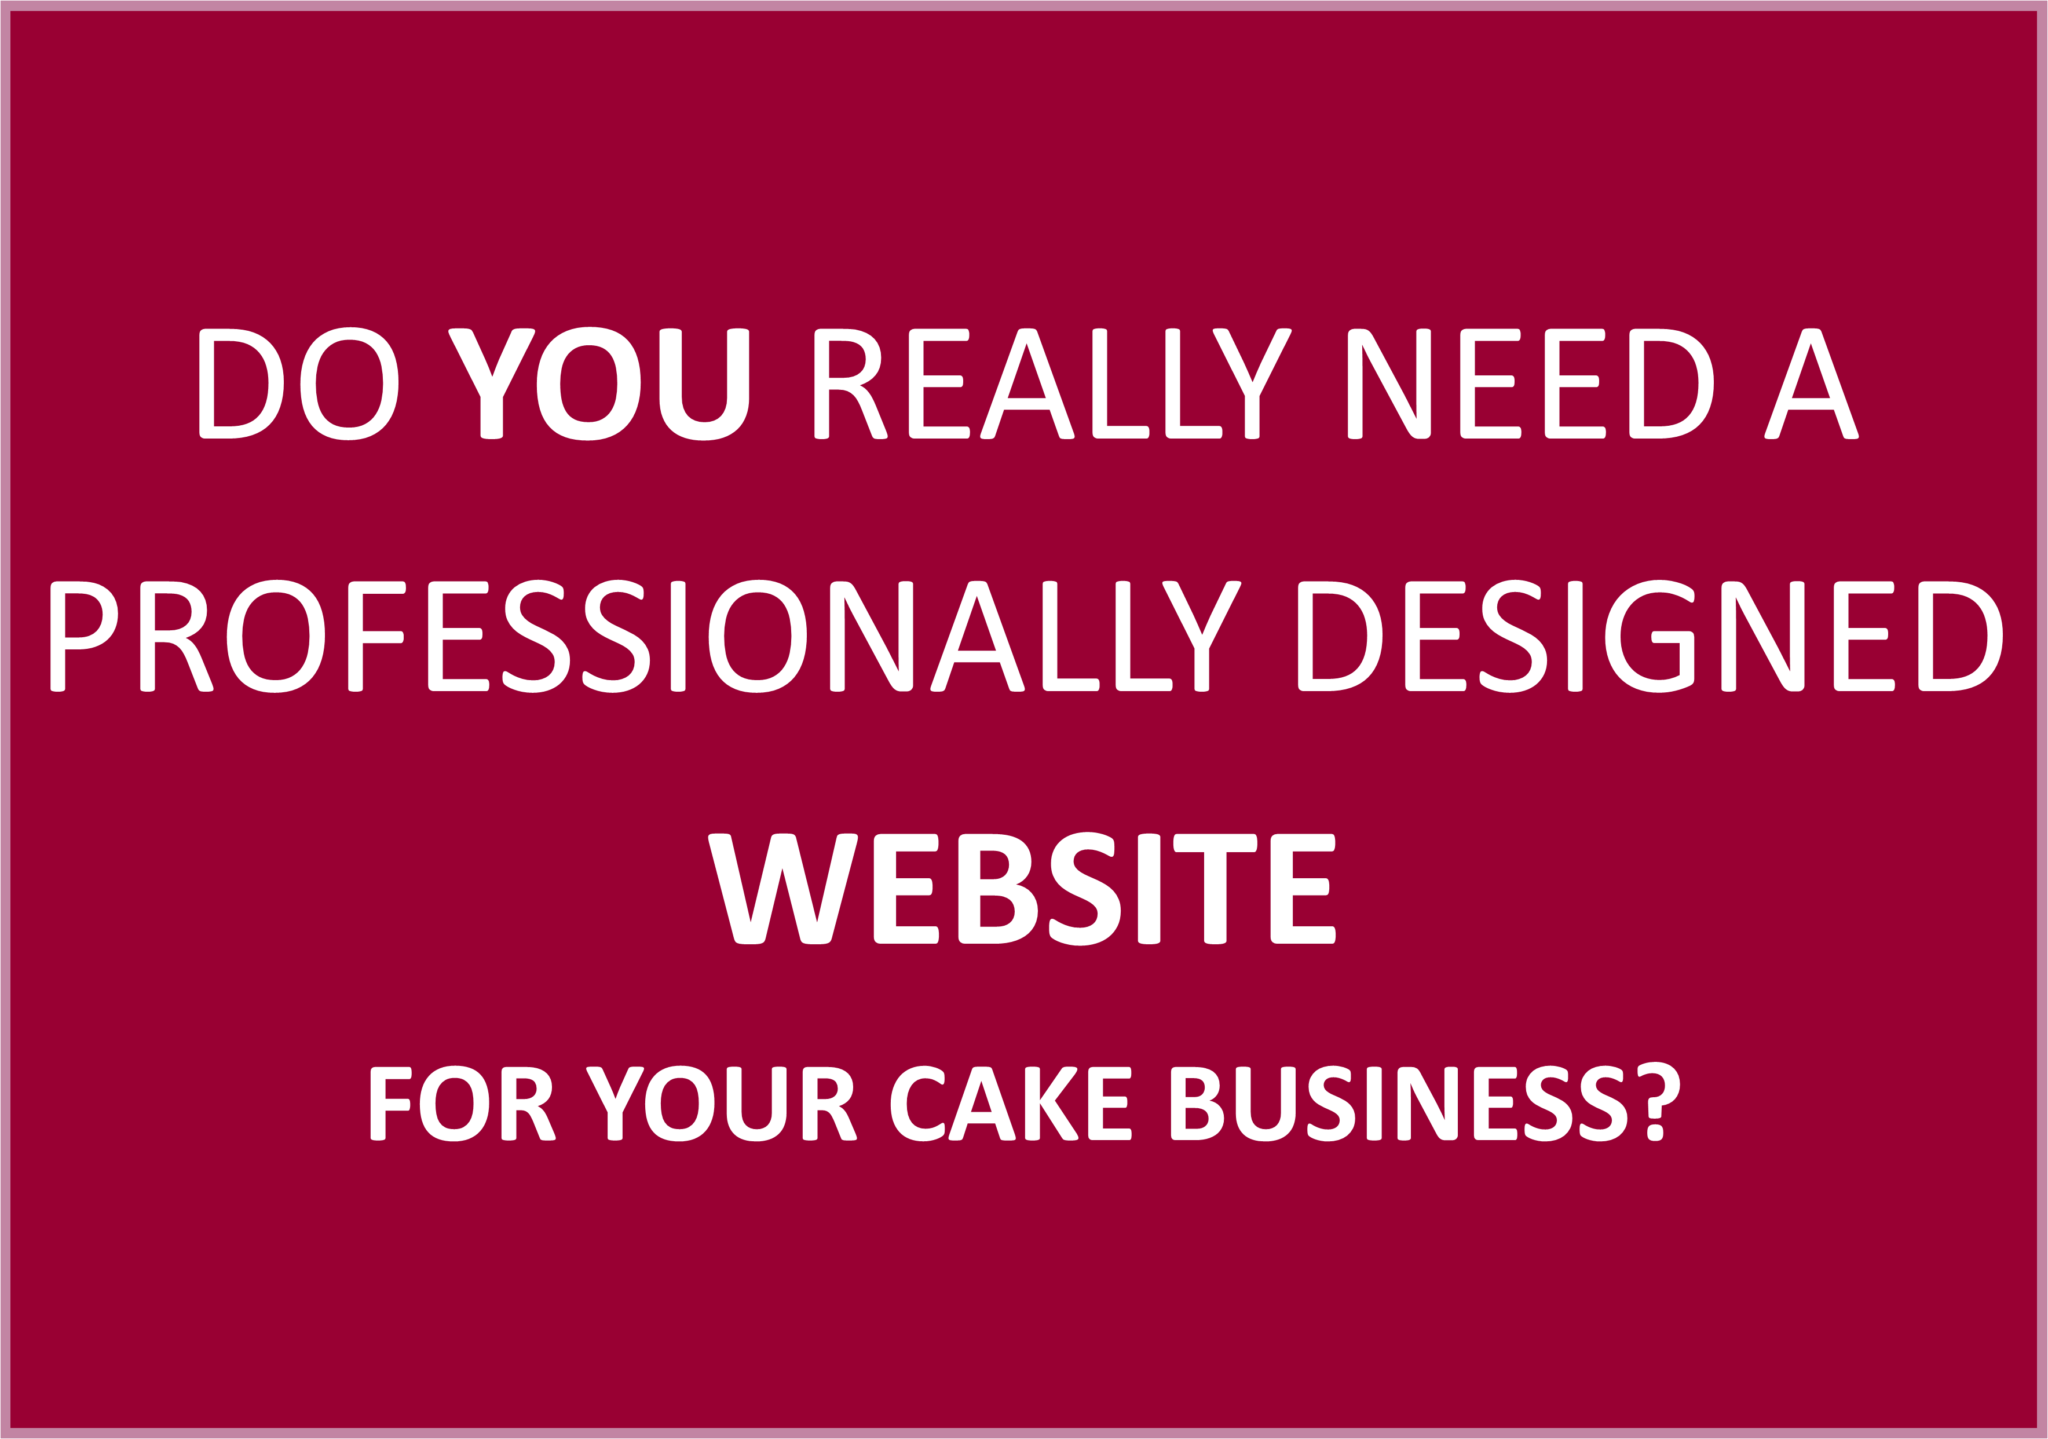 Do You Need a Professional Website for Your Cake Business?